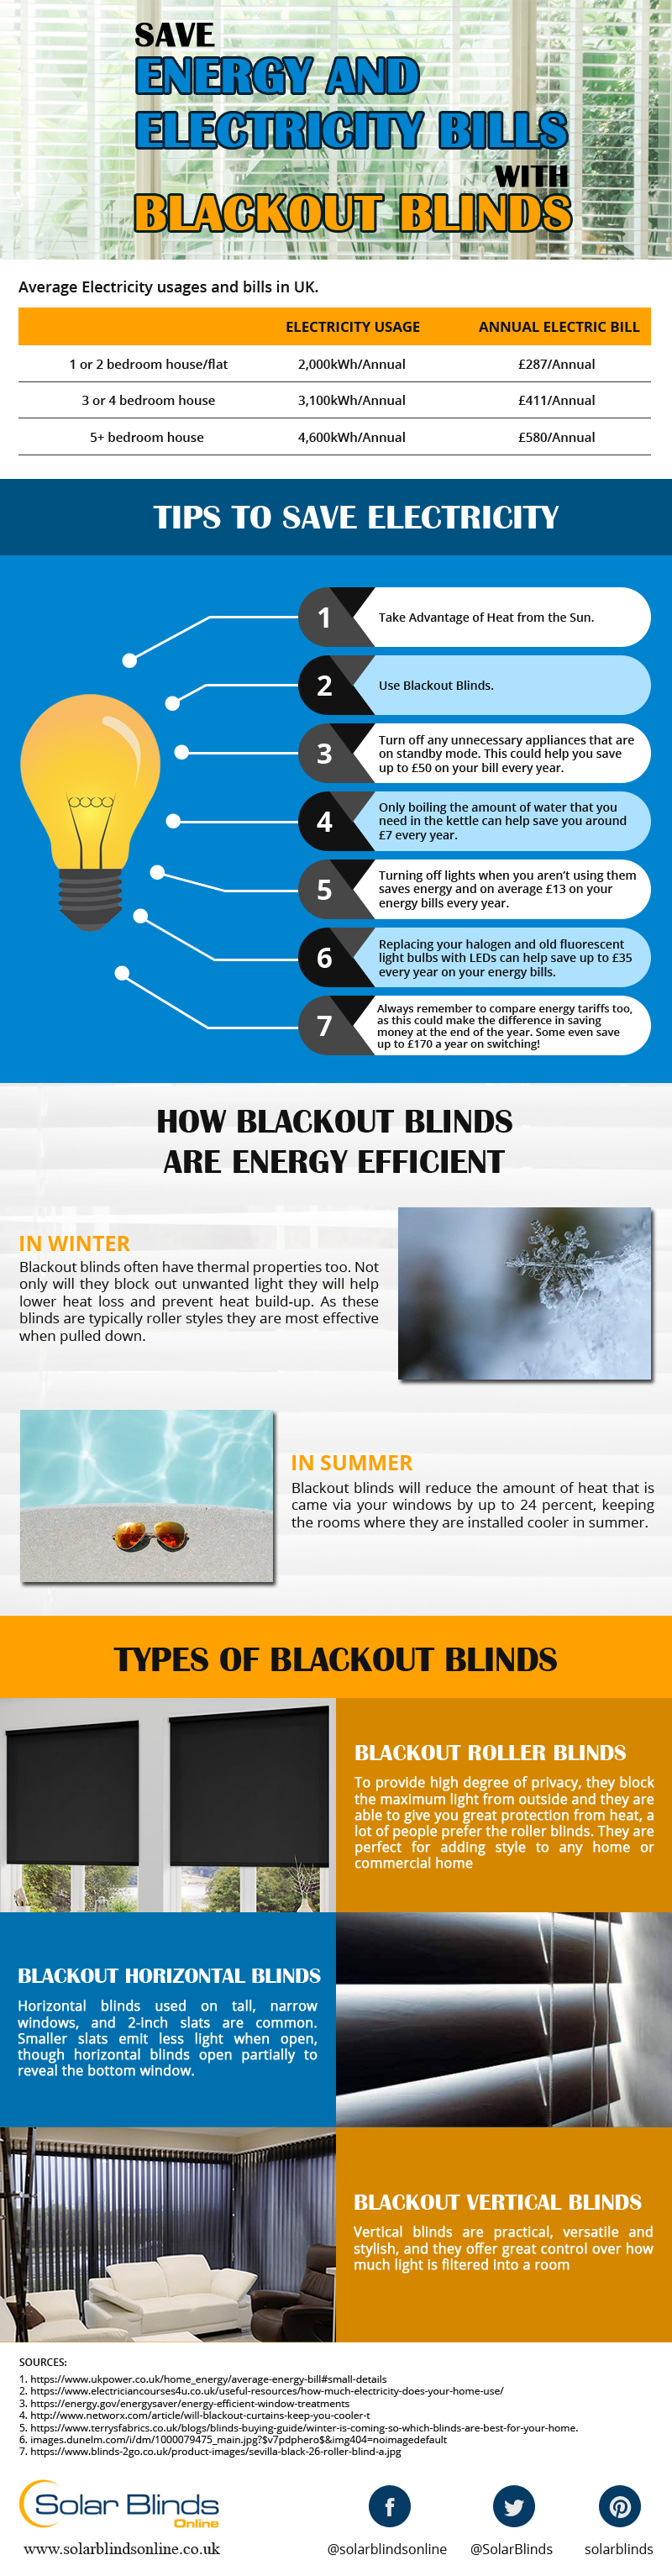 Save Energy and Electricity Bills With Blackout Blinds [Infographic]